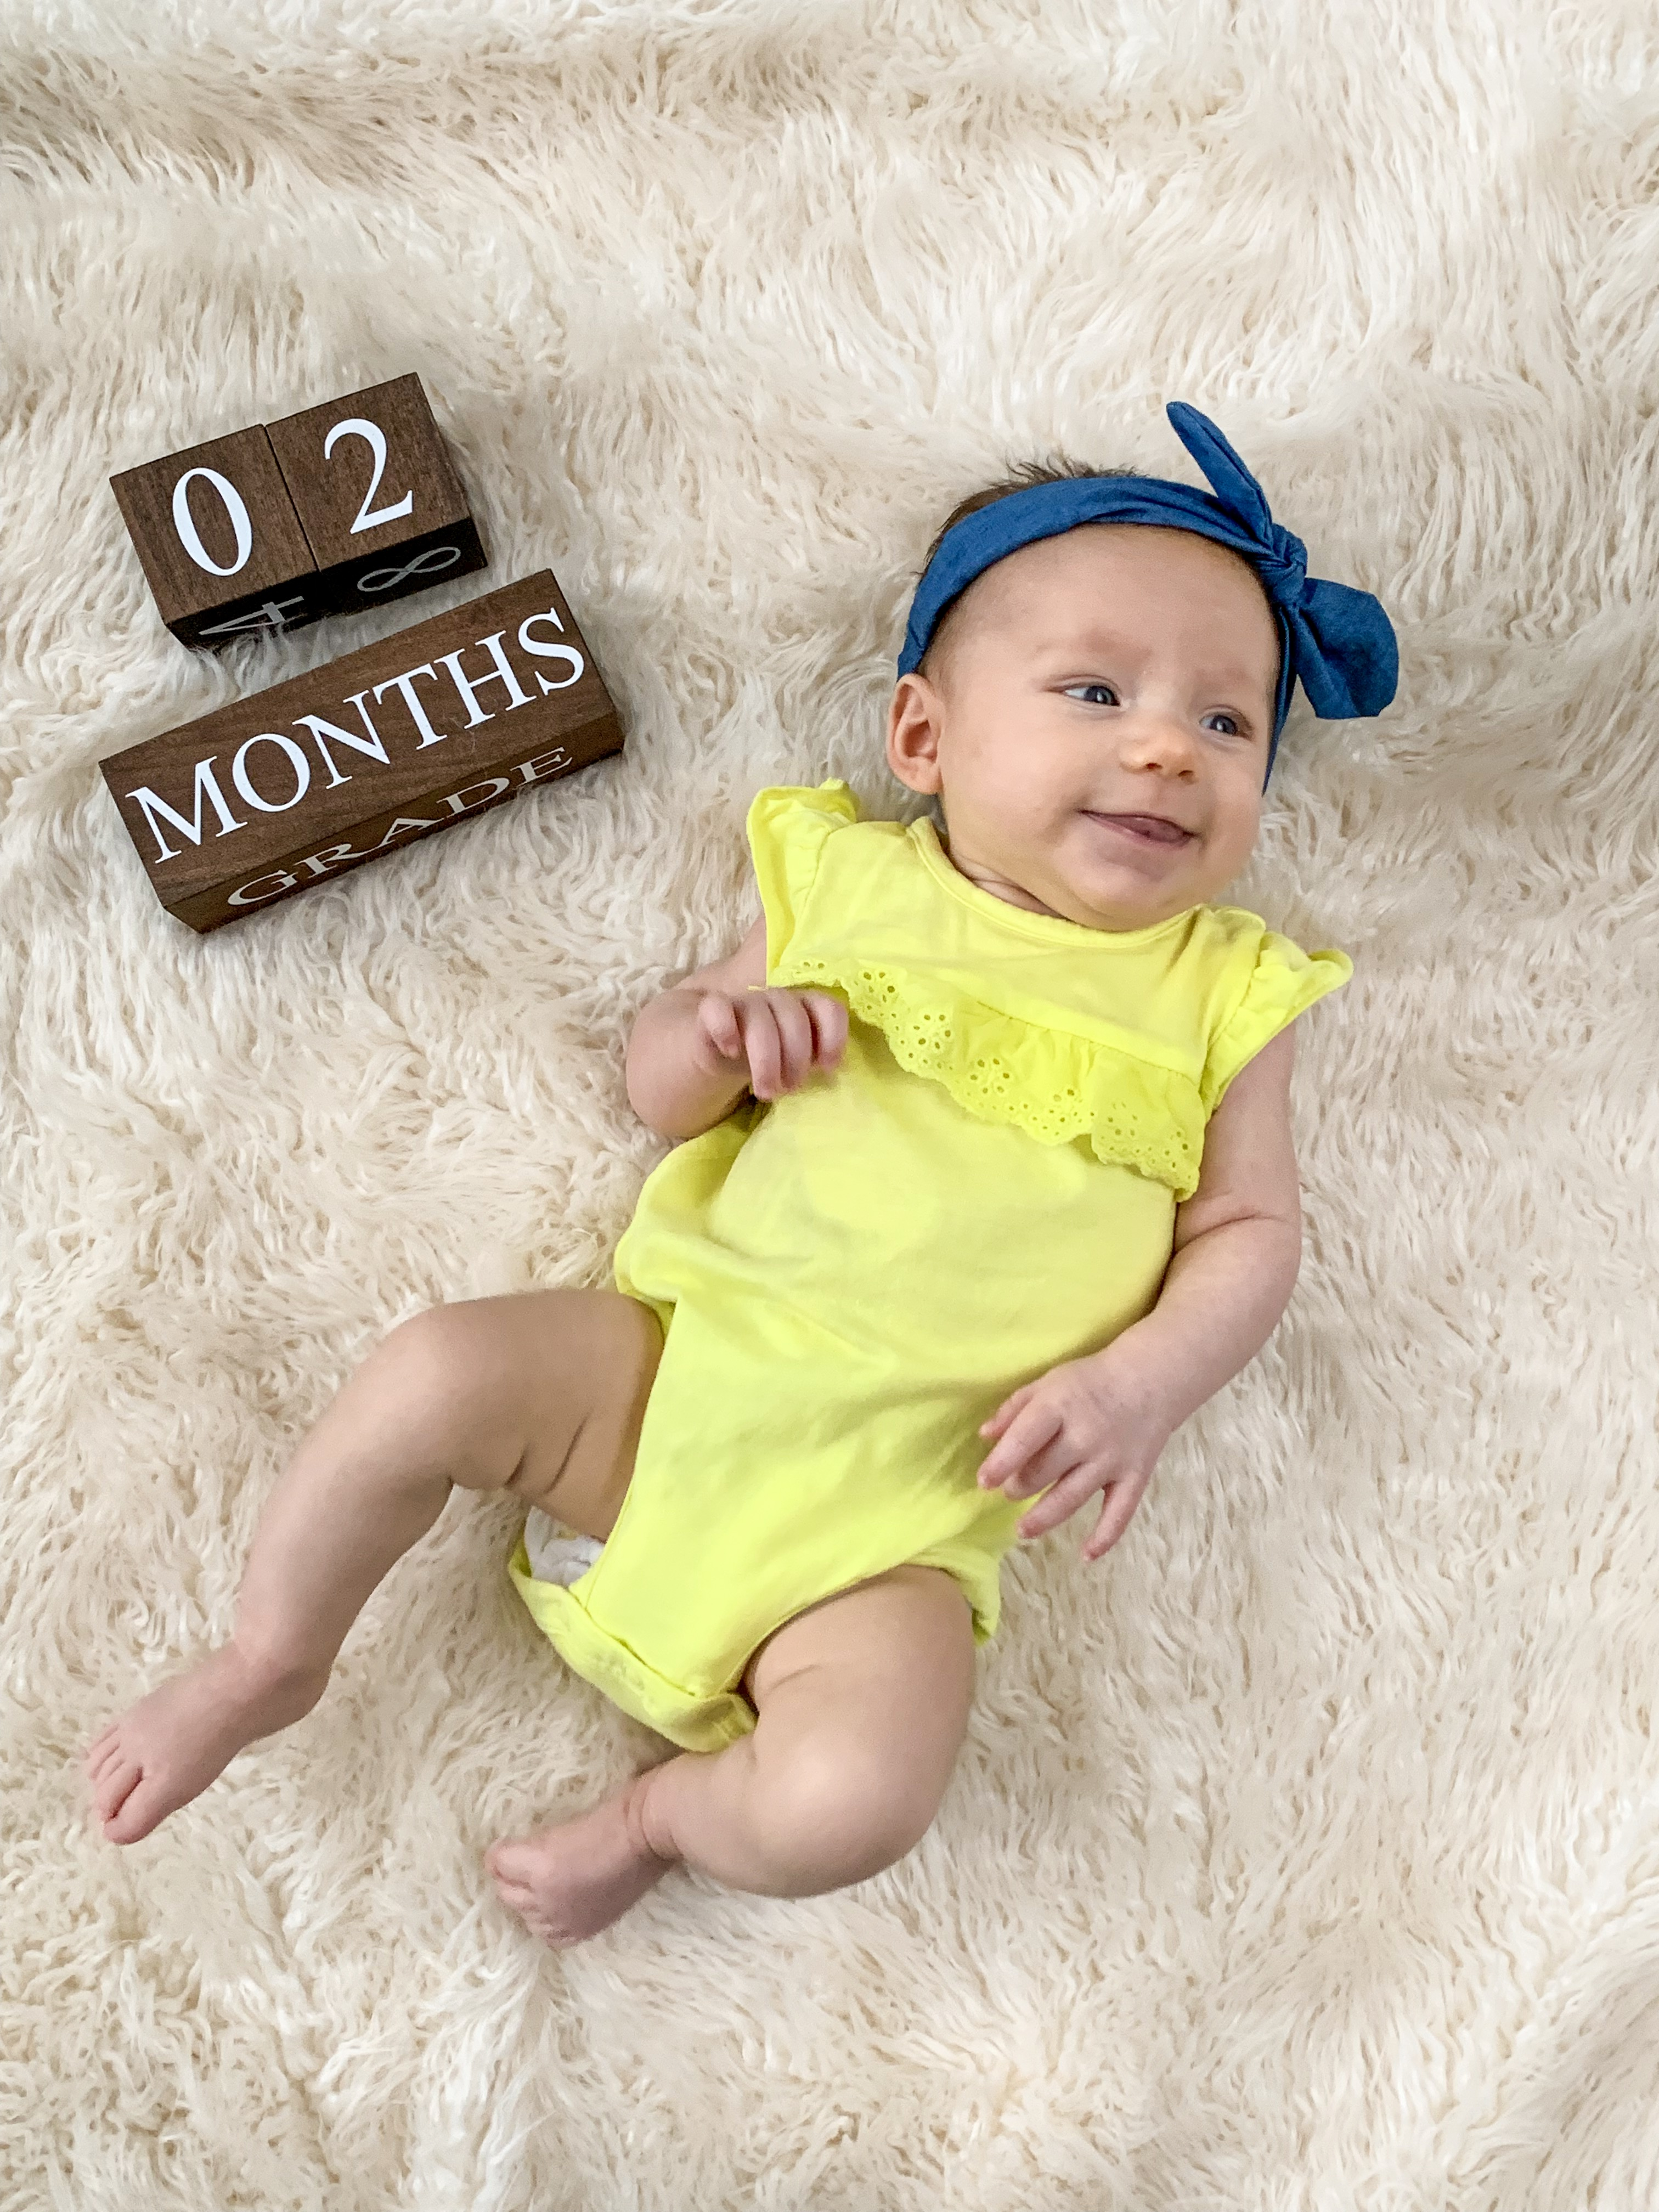 2 month baby picture